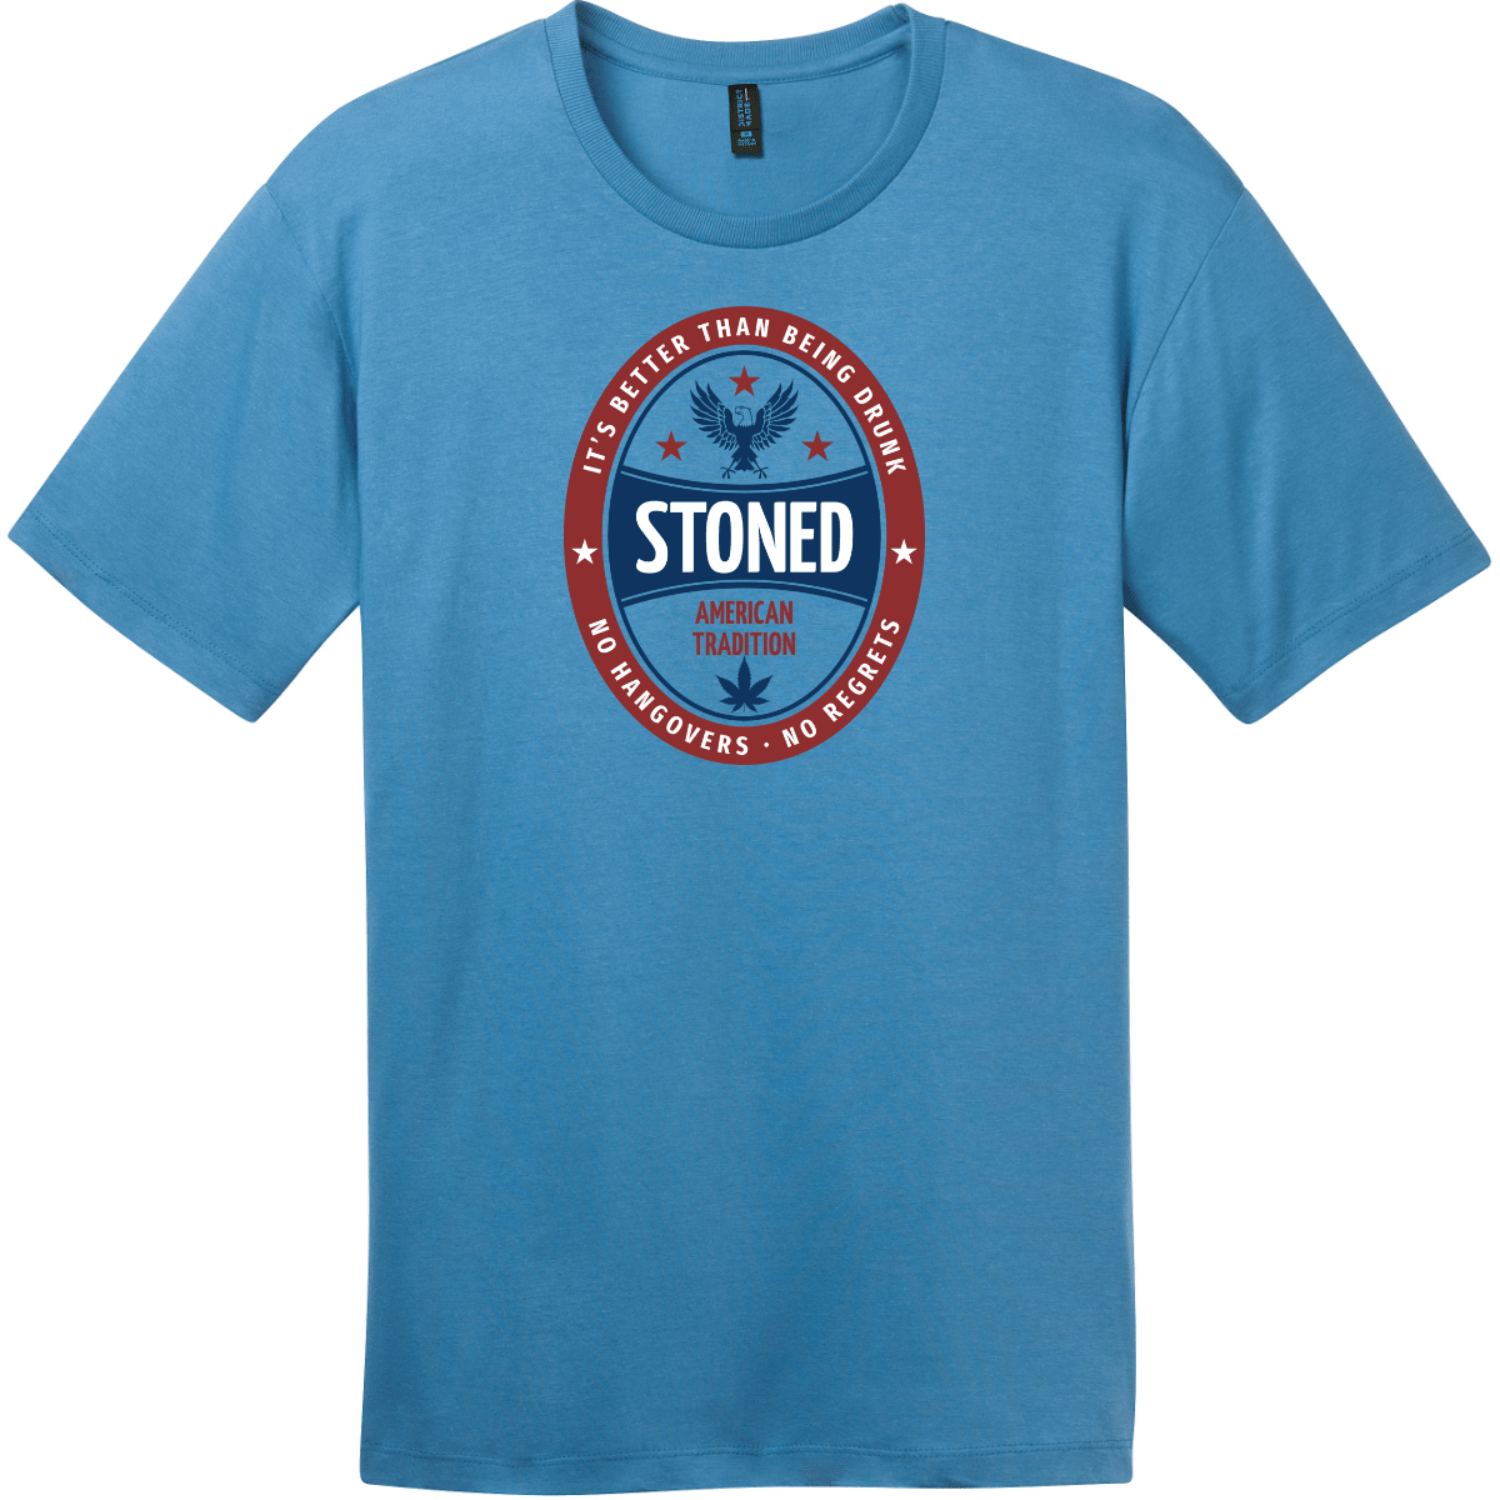 Stoned It's Better Than Being Drunk T-Shirt Clean Denim District Perfect Weight Tee DT104